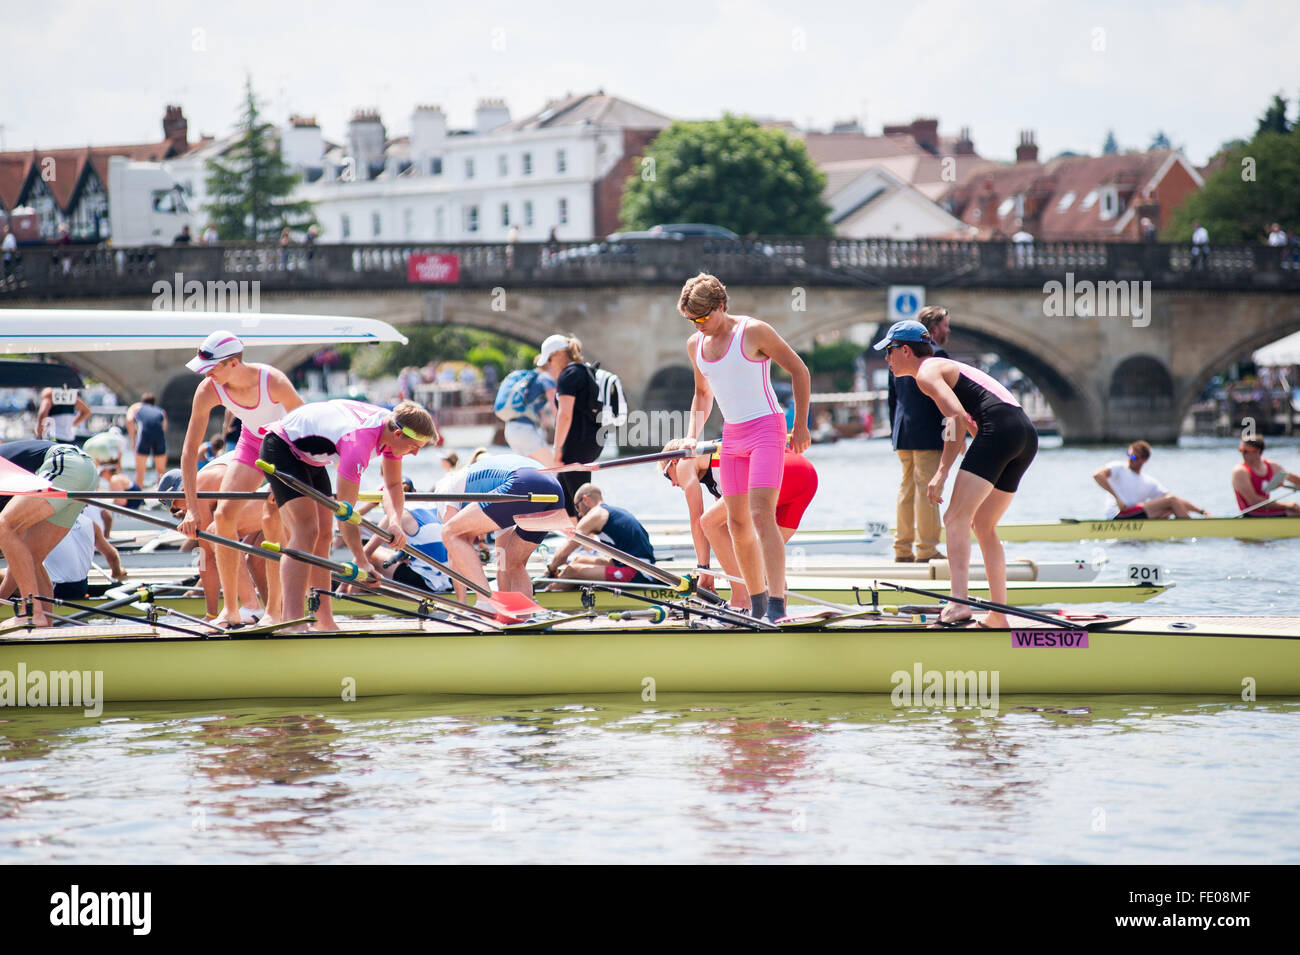 Rowers at Henley Regatta 2015 - Stock Image